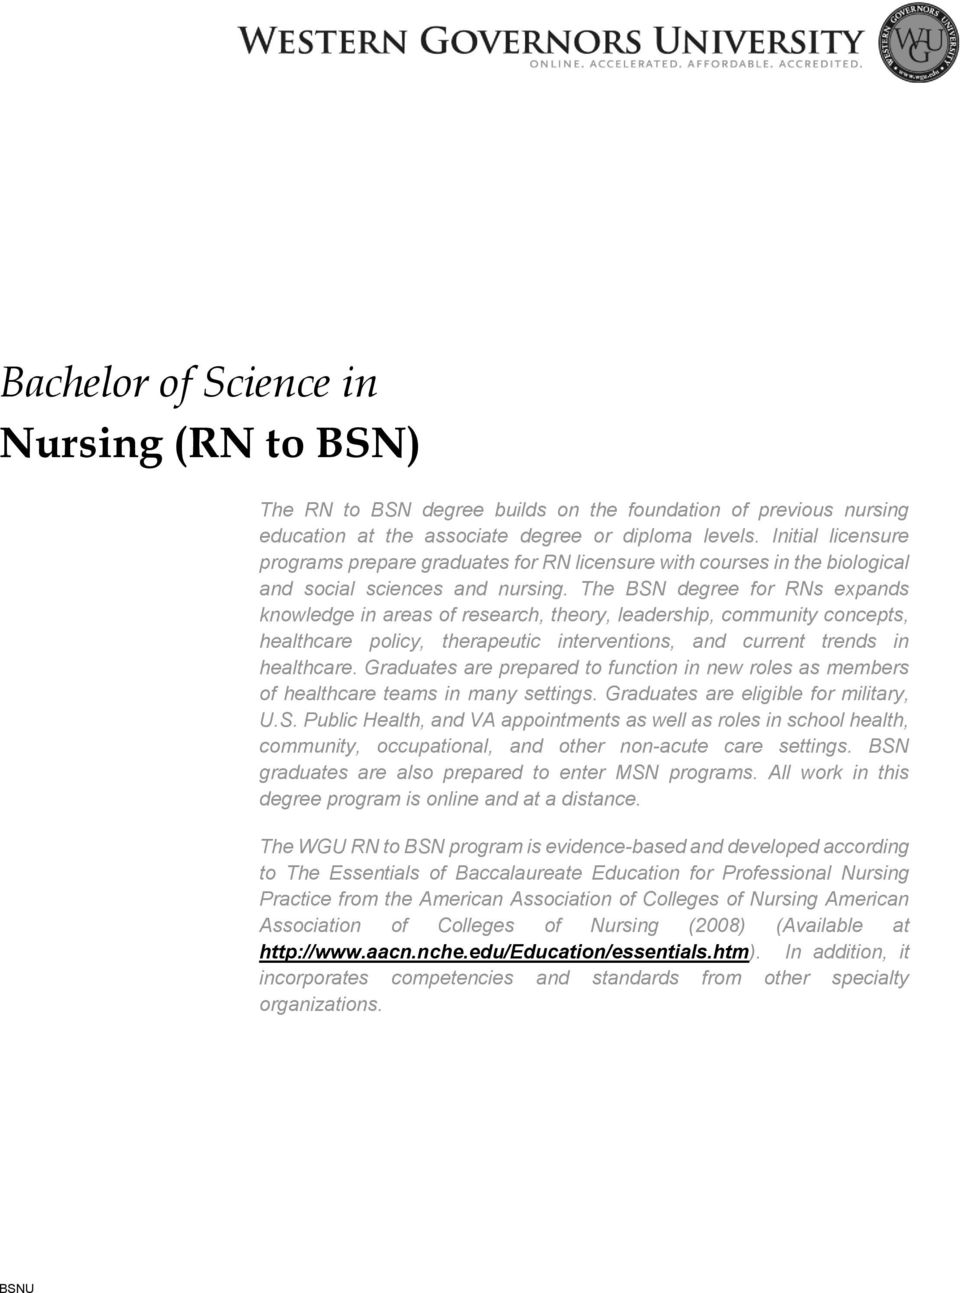 The BSN degree for RNs expands knowledge in areas of research, theory, leadership, community concepts, healthcare policy, therapeutic interventions, and current trends in healthcare.